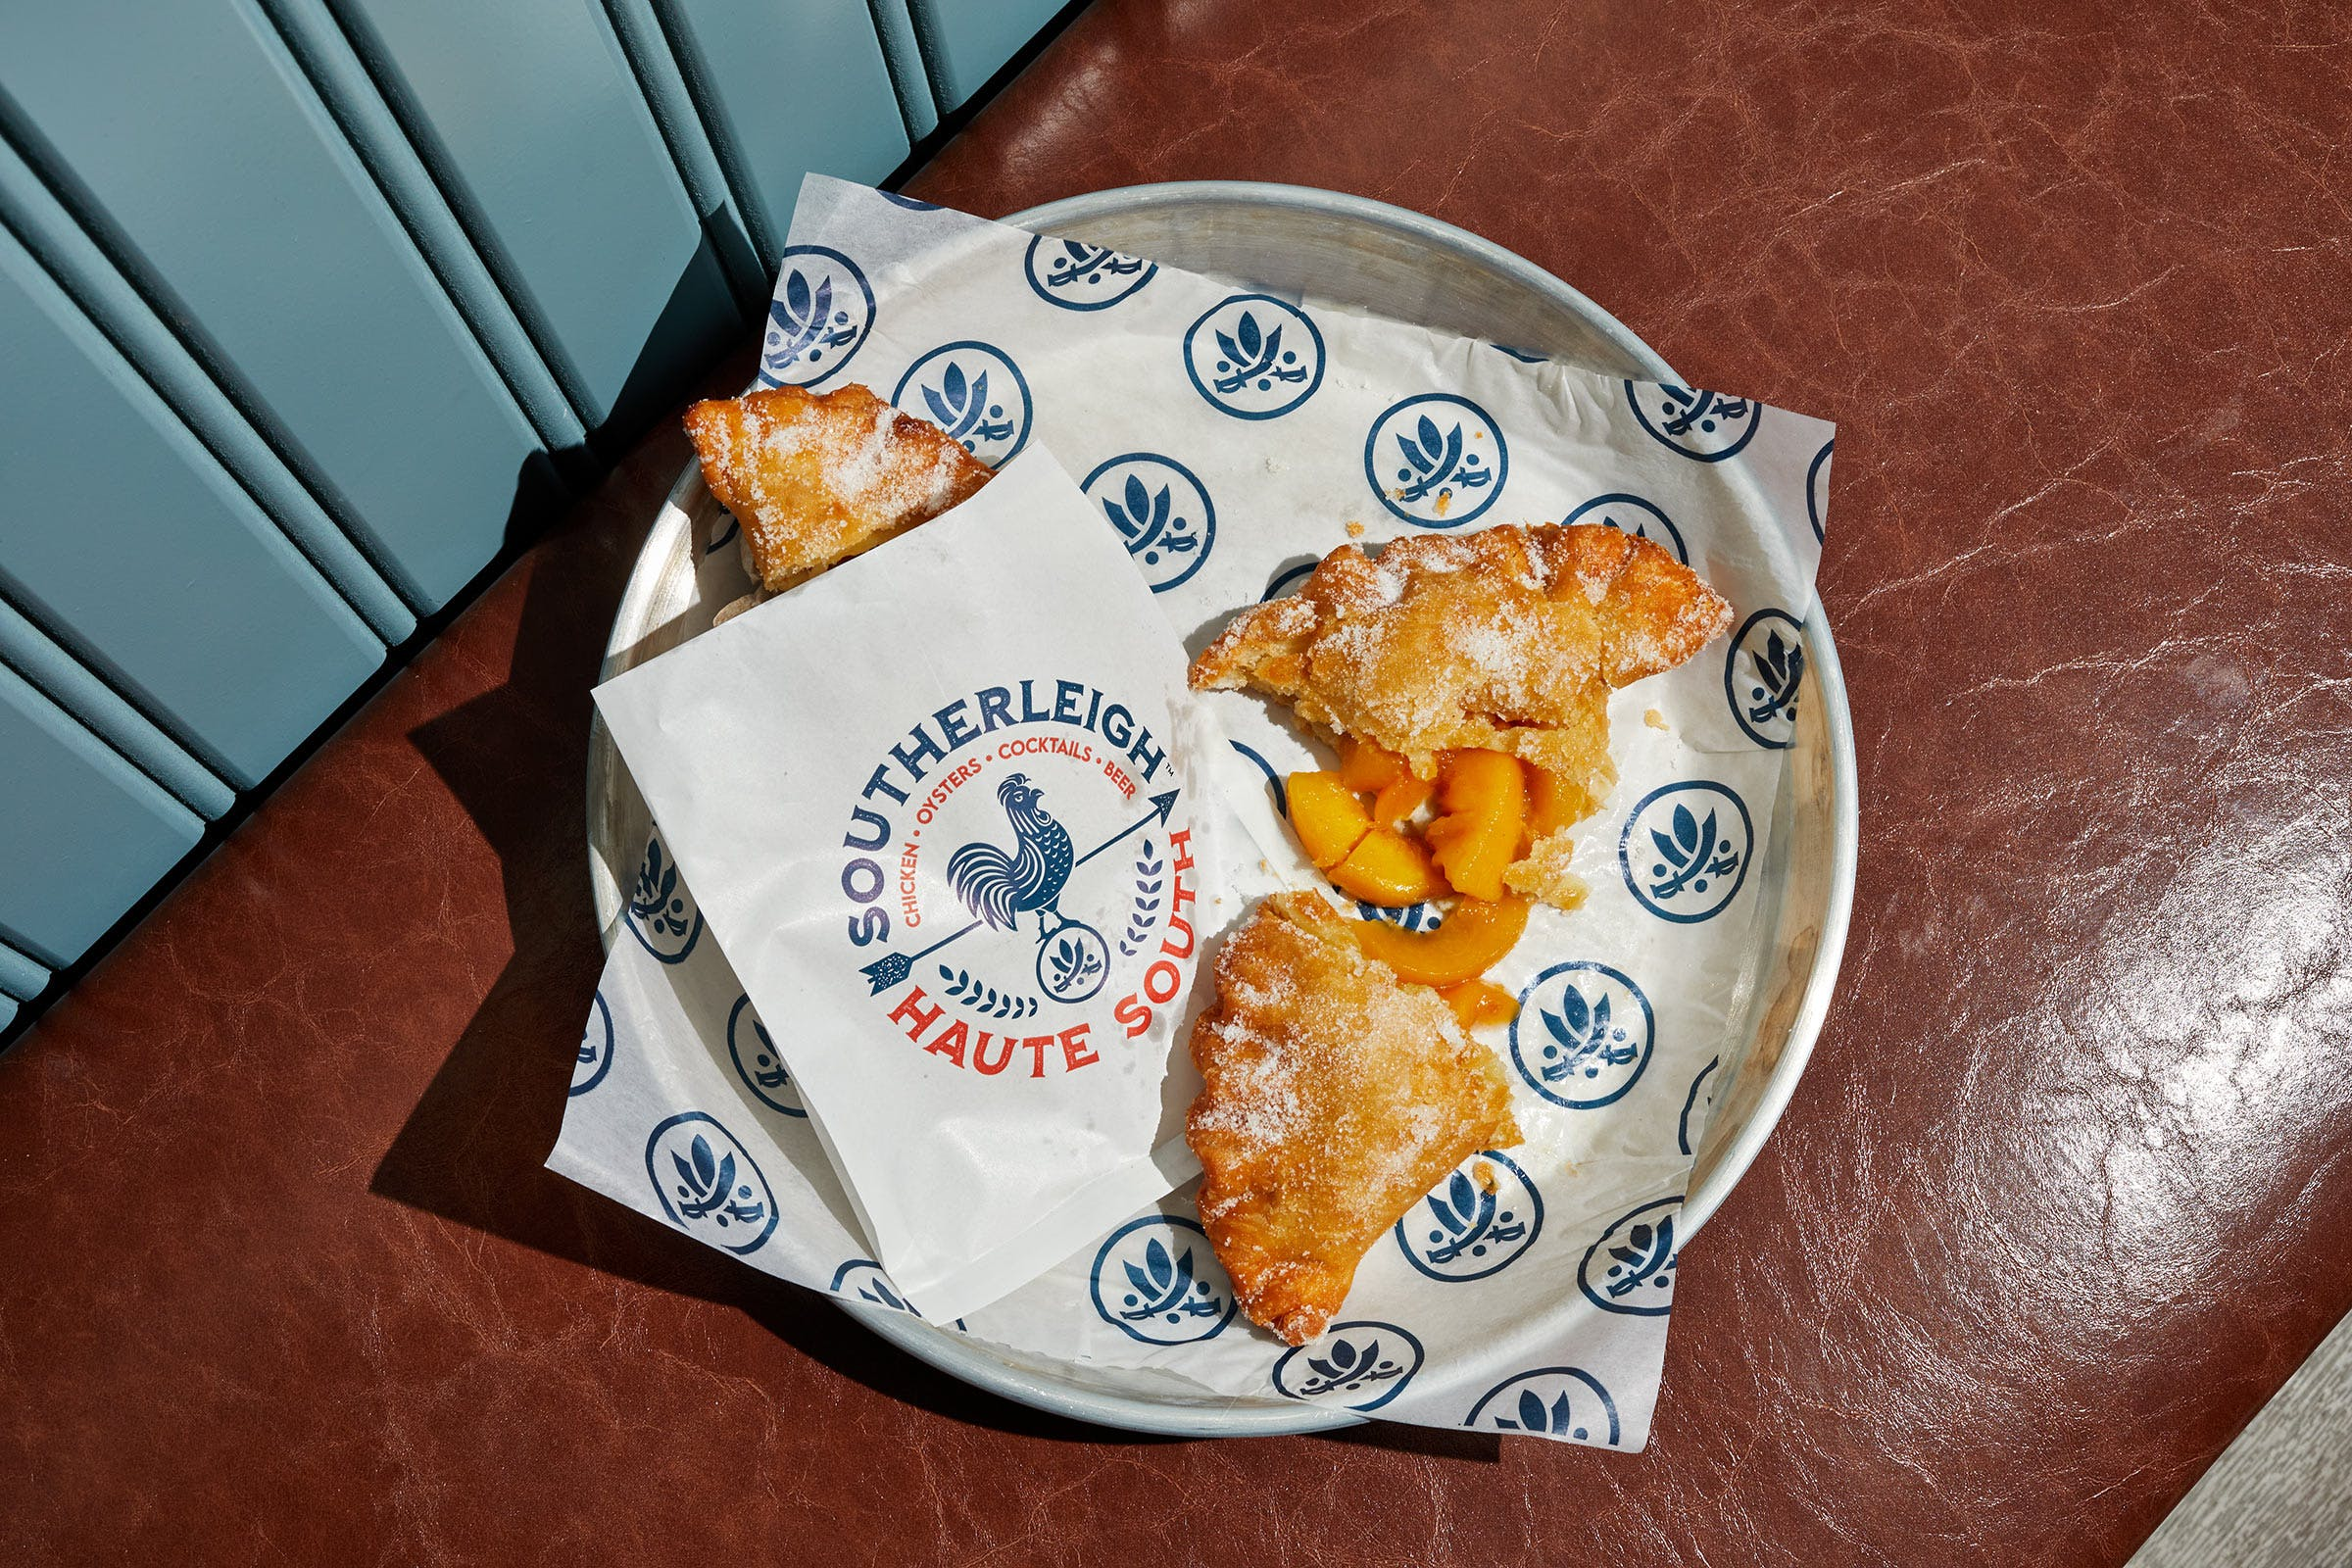 Peach hand pies at Southerleigh Haute South in San Antonio.